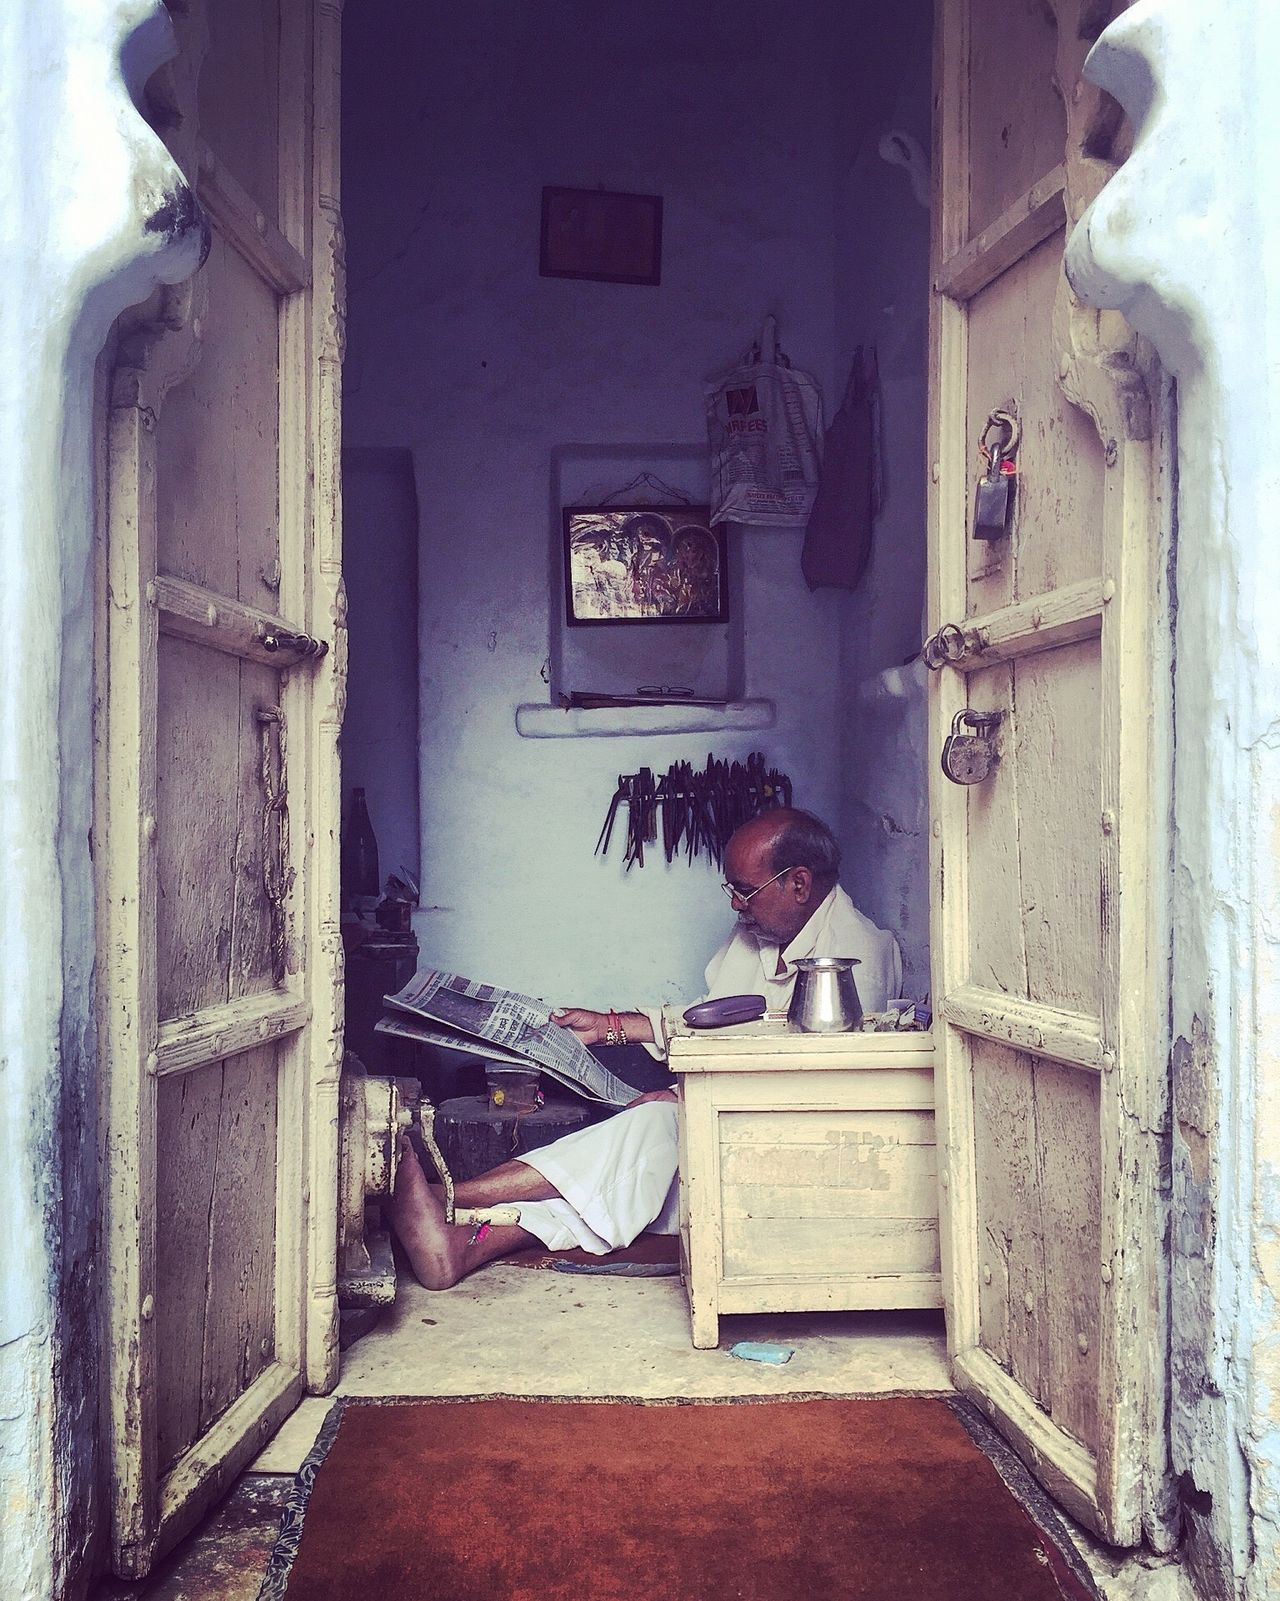 The Street Photographer - 2016 EyeEm Awards Sat Down Reading The Paper Indian Culture  Indian People Traditional Culture India Relaxing Streetphotography EyeEm Cultures EyeEm Best Edits EyeEm Best Shots People Of EyeEm EyeEmBestPics EyeEm Gallery Lifestyles Indian Man Small Business Going Unnoticed Udaipur Streets Of India Casual